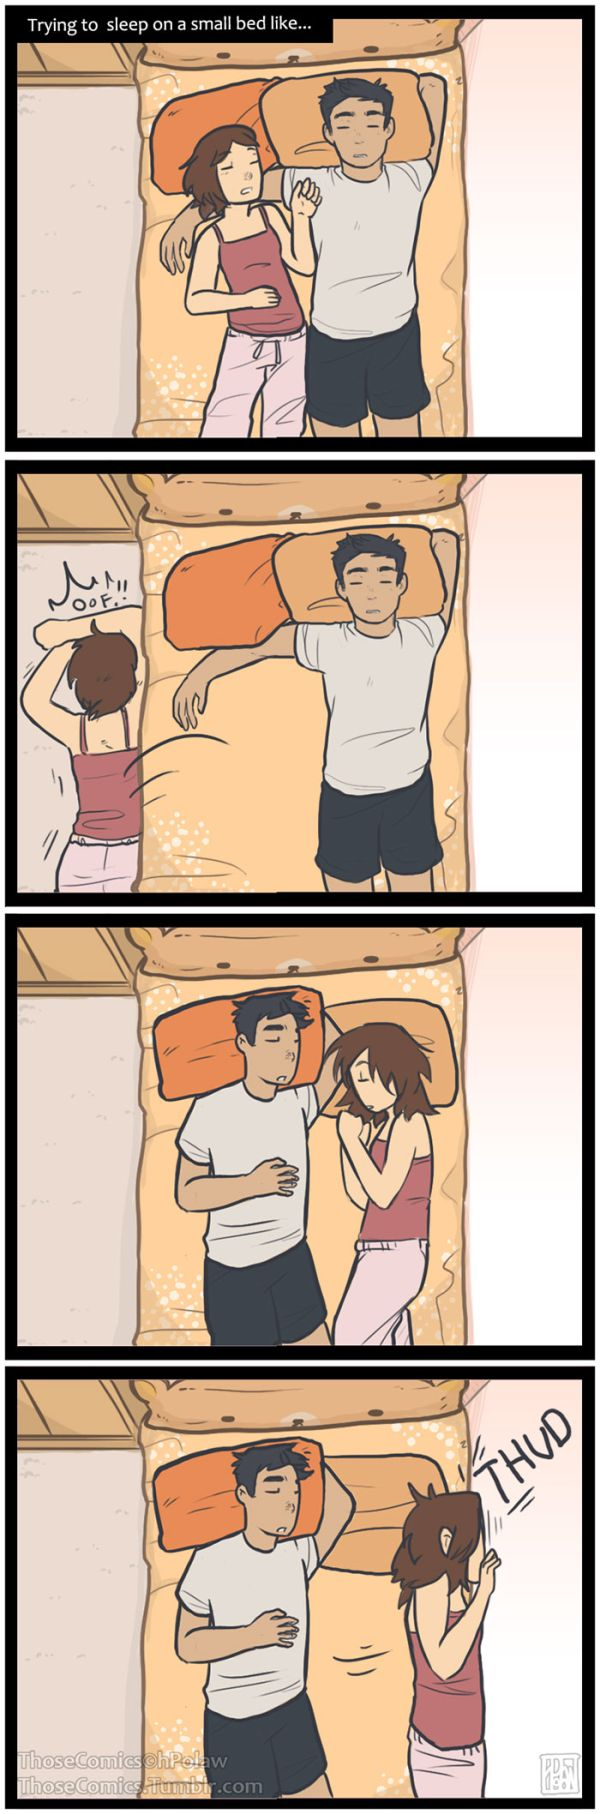 Comics About Couple Life Show Happiness Is In The Little Things (30 pics)